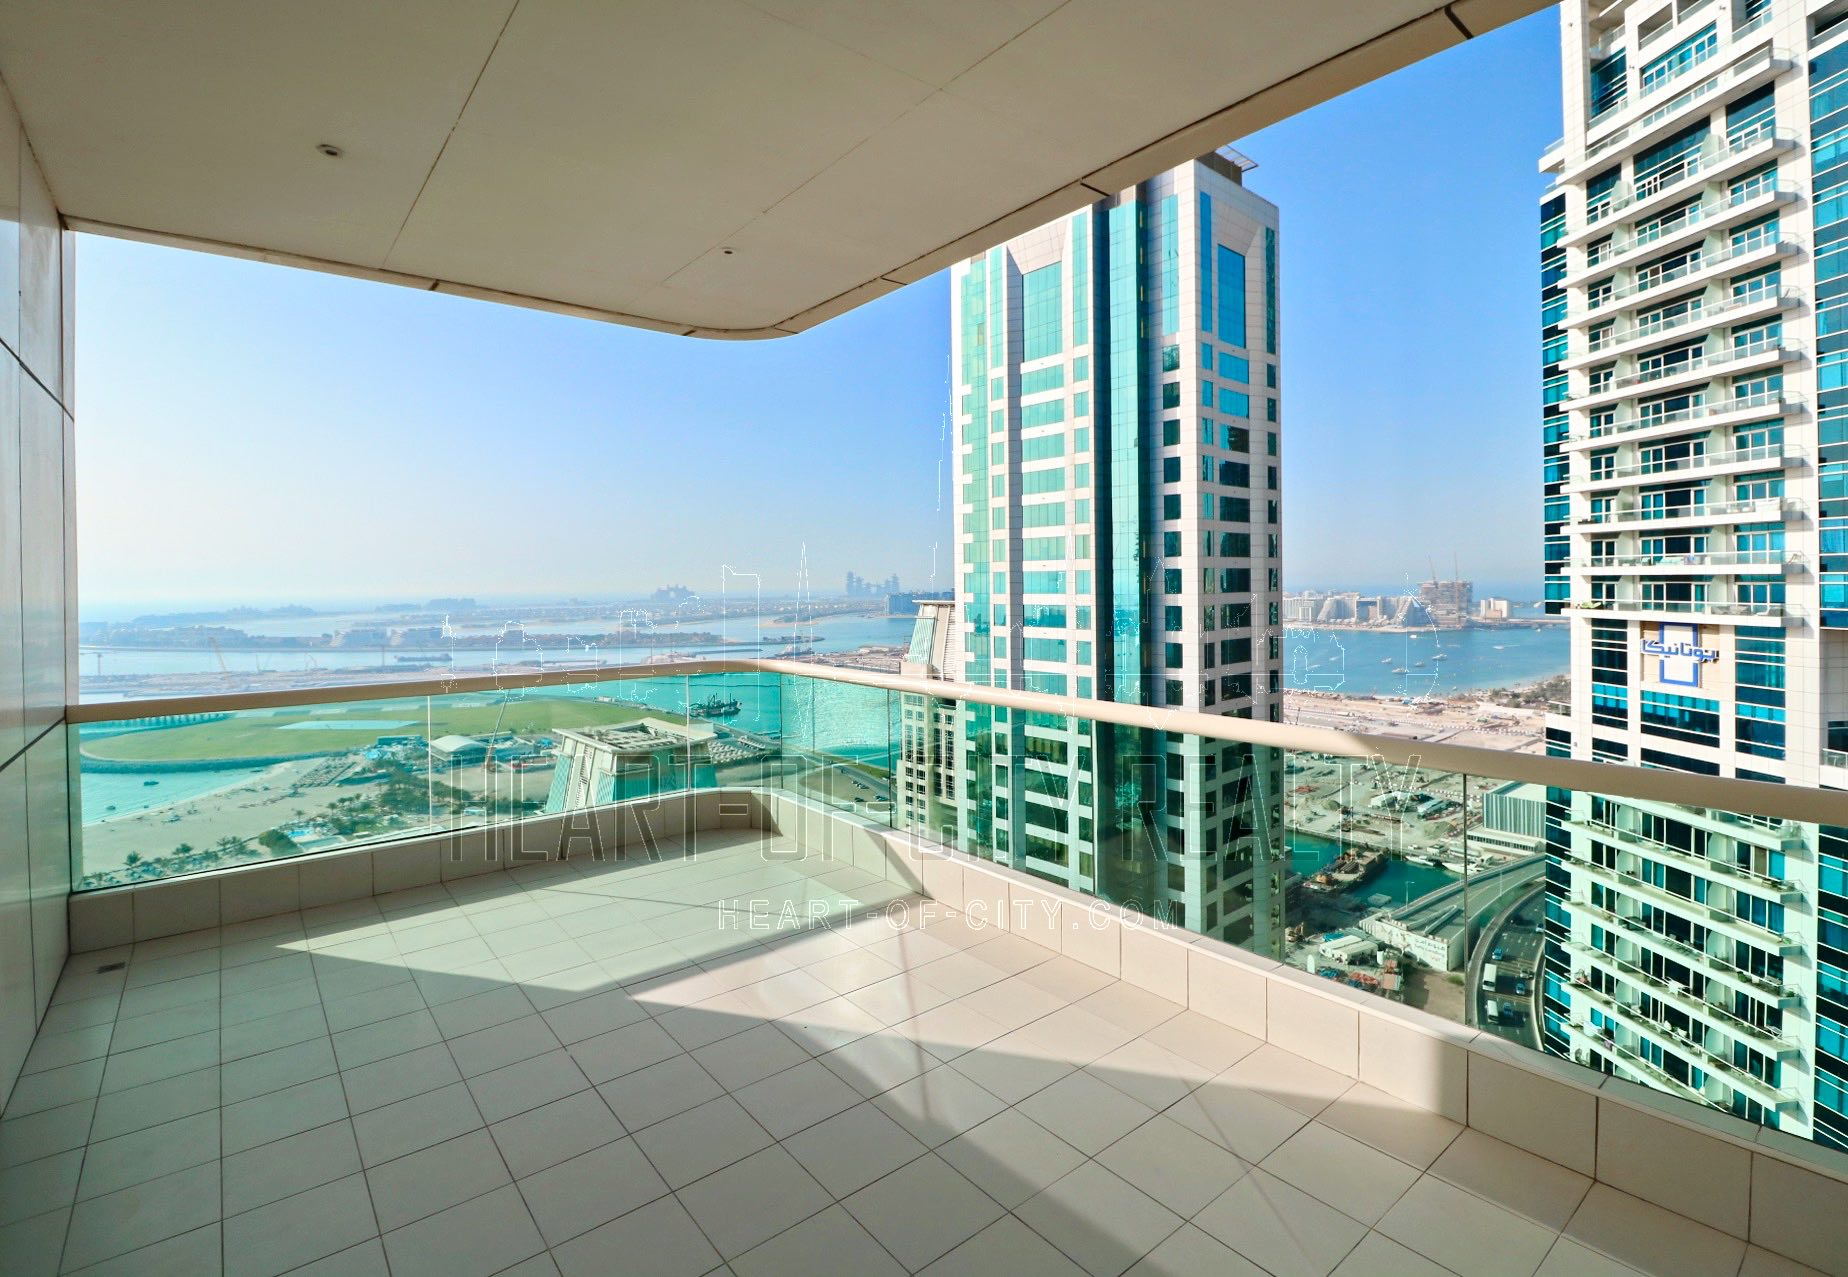 Balcony in apartment for sale in royal oceanic at dubai marina